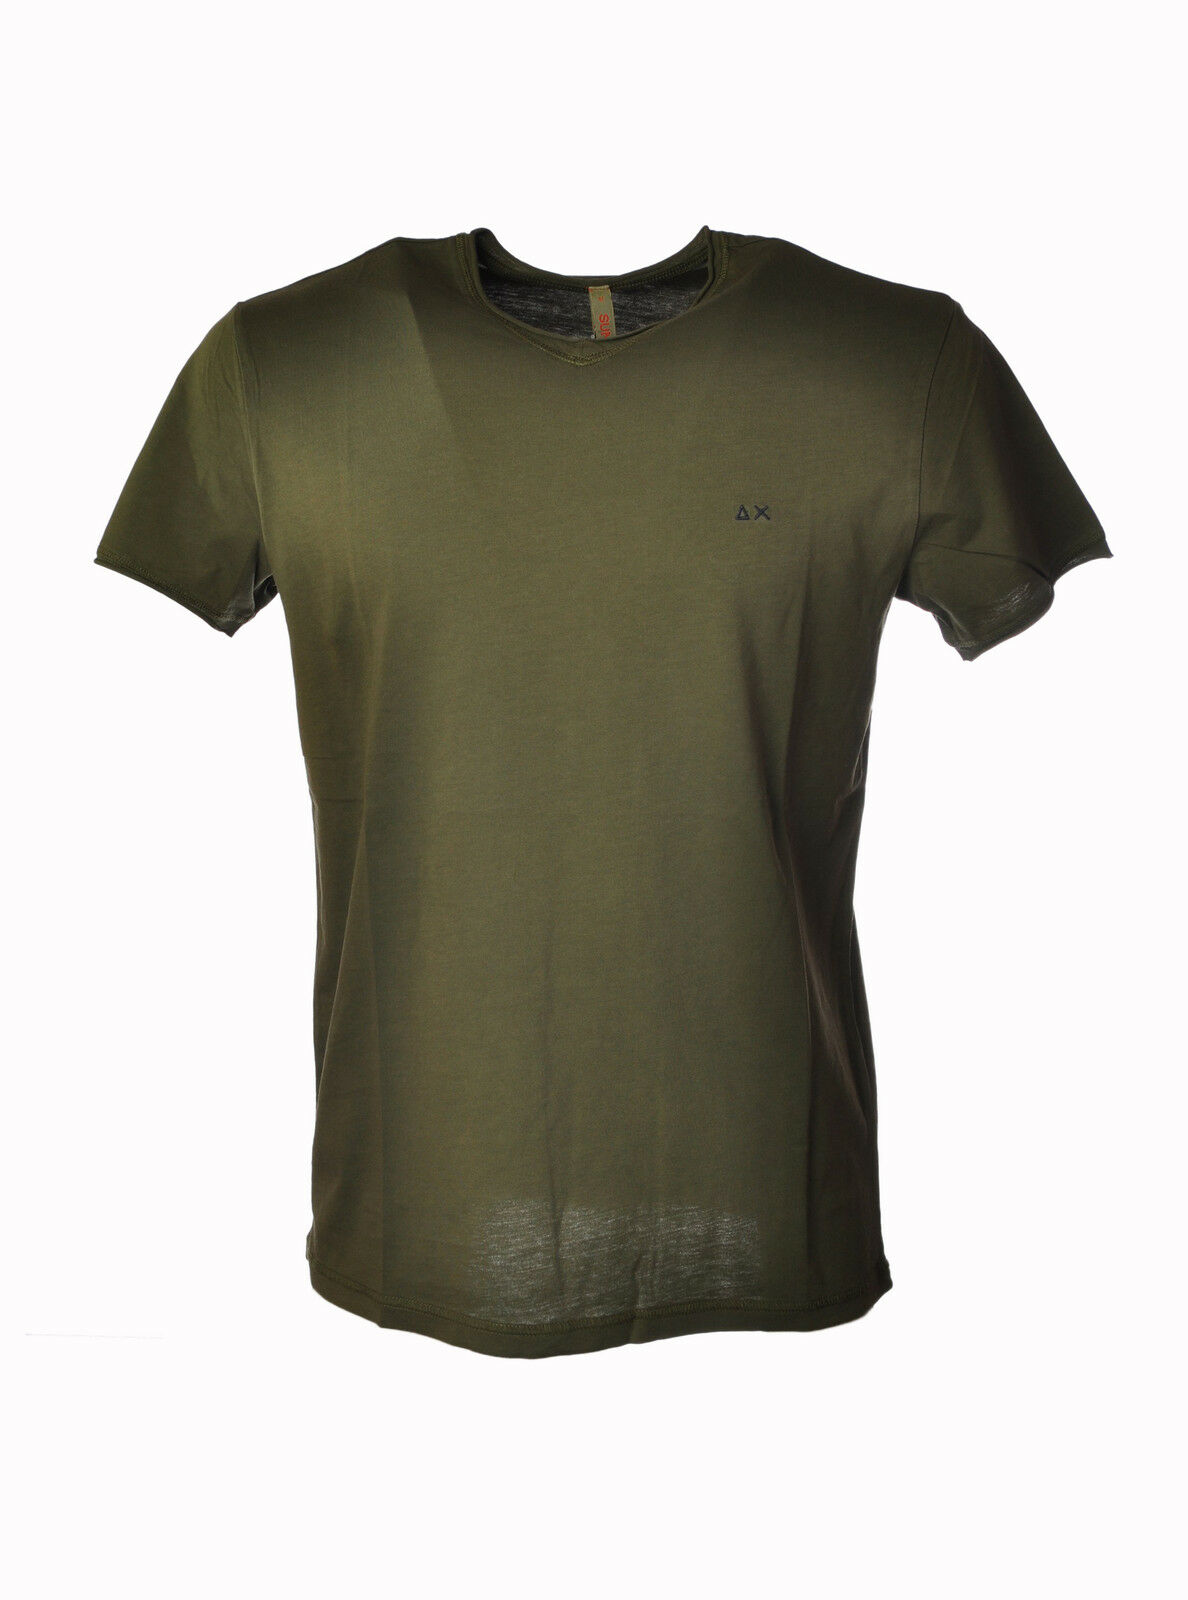 Sun 68 - Topwear-T-shirts - Man - Green - 3200925E184158